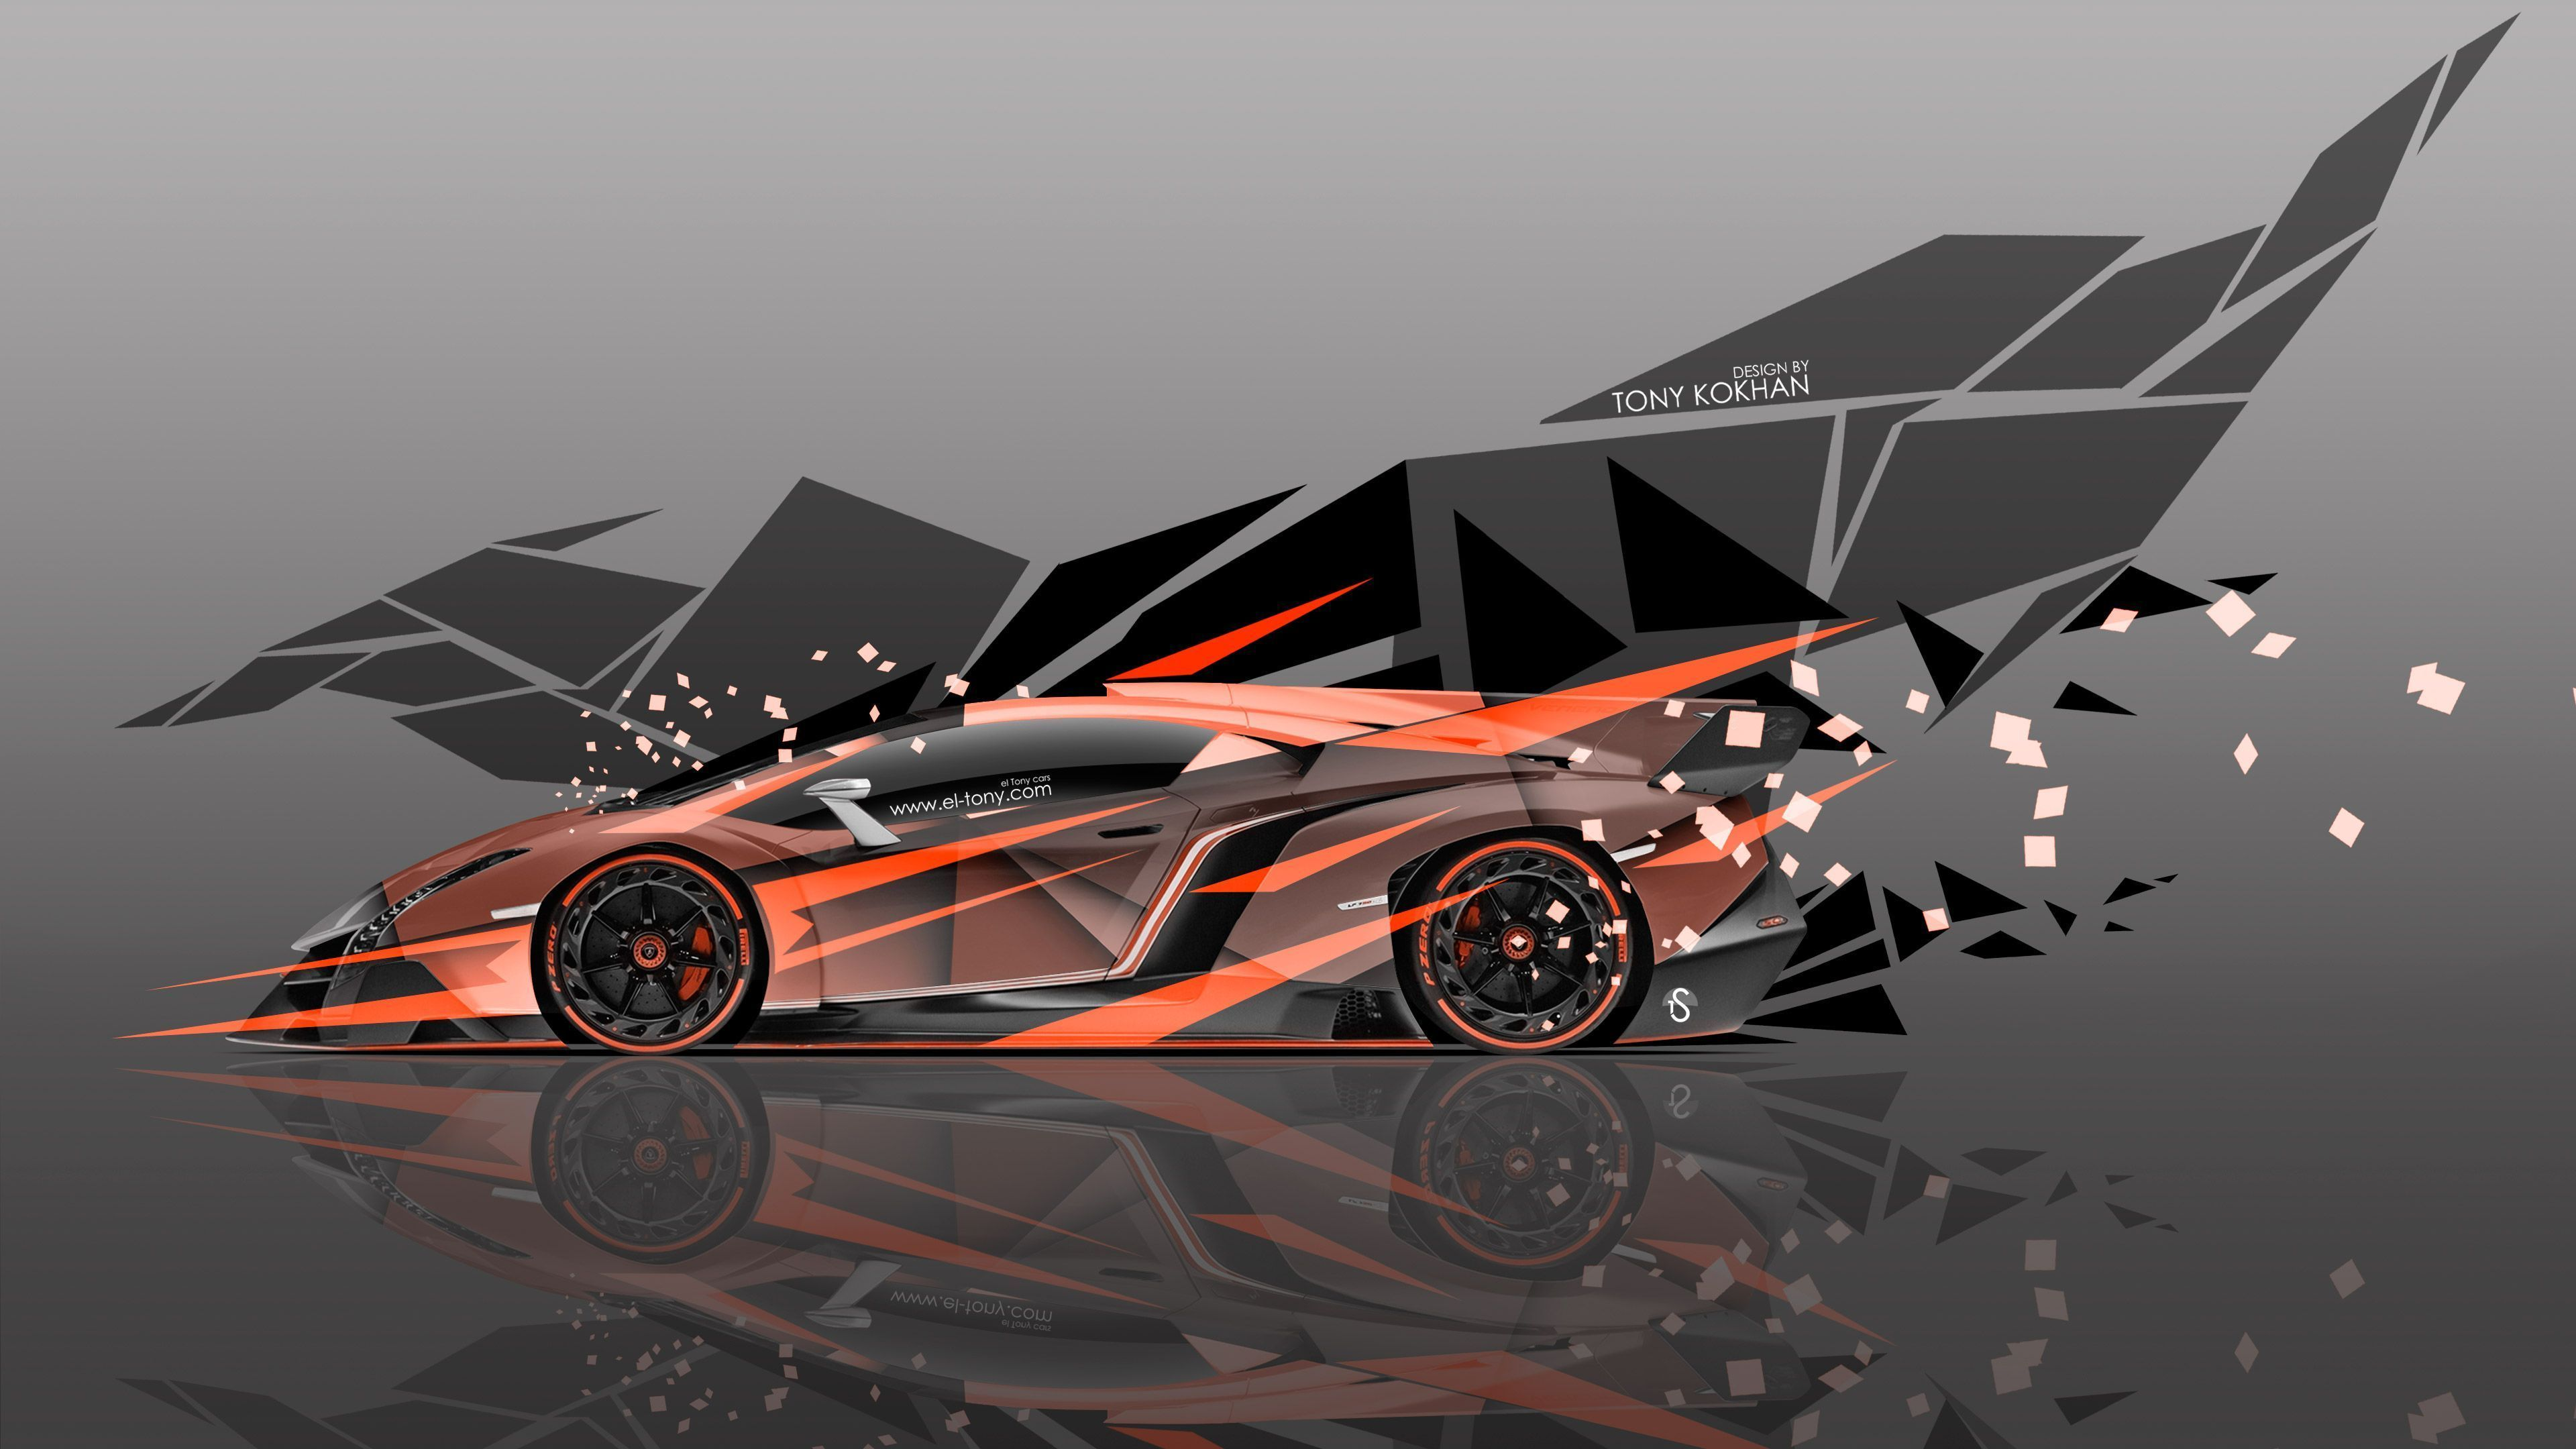 Beau 4K Wallpapers Lamborghini Aventador Side Aerography Car 2014 « El Tony